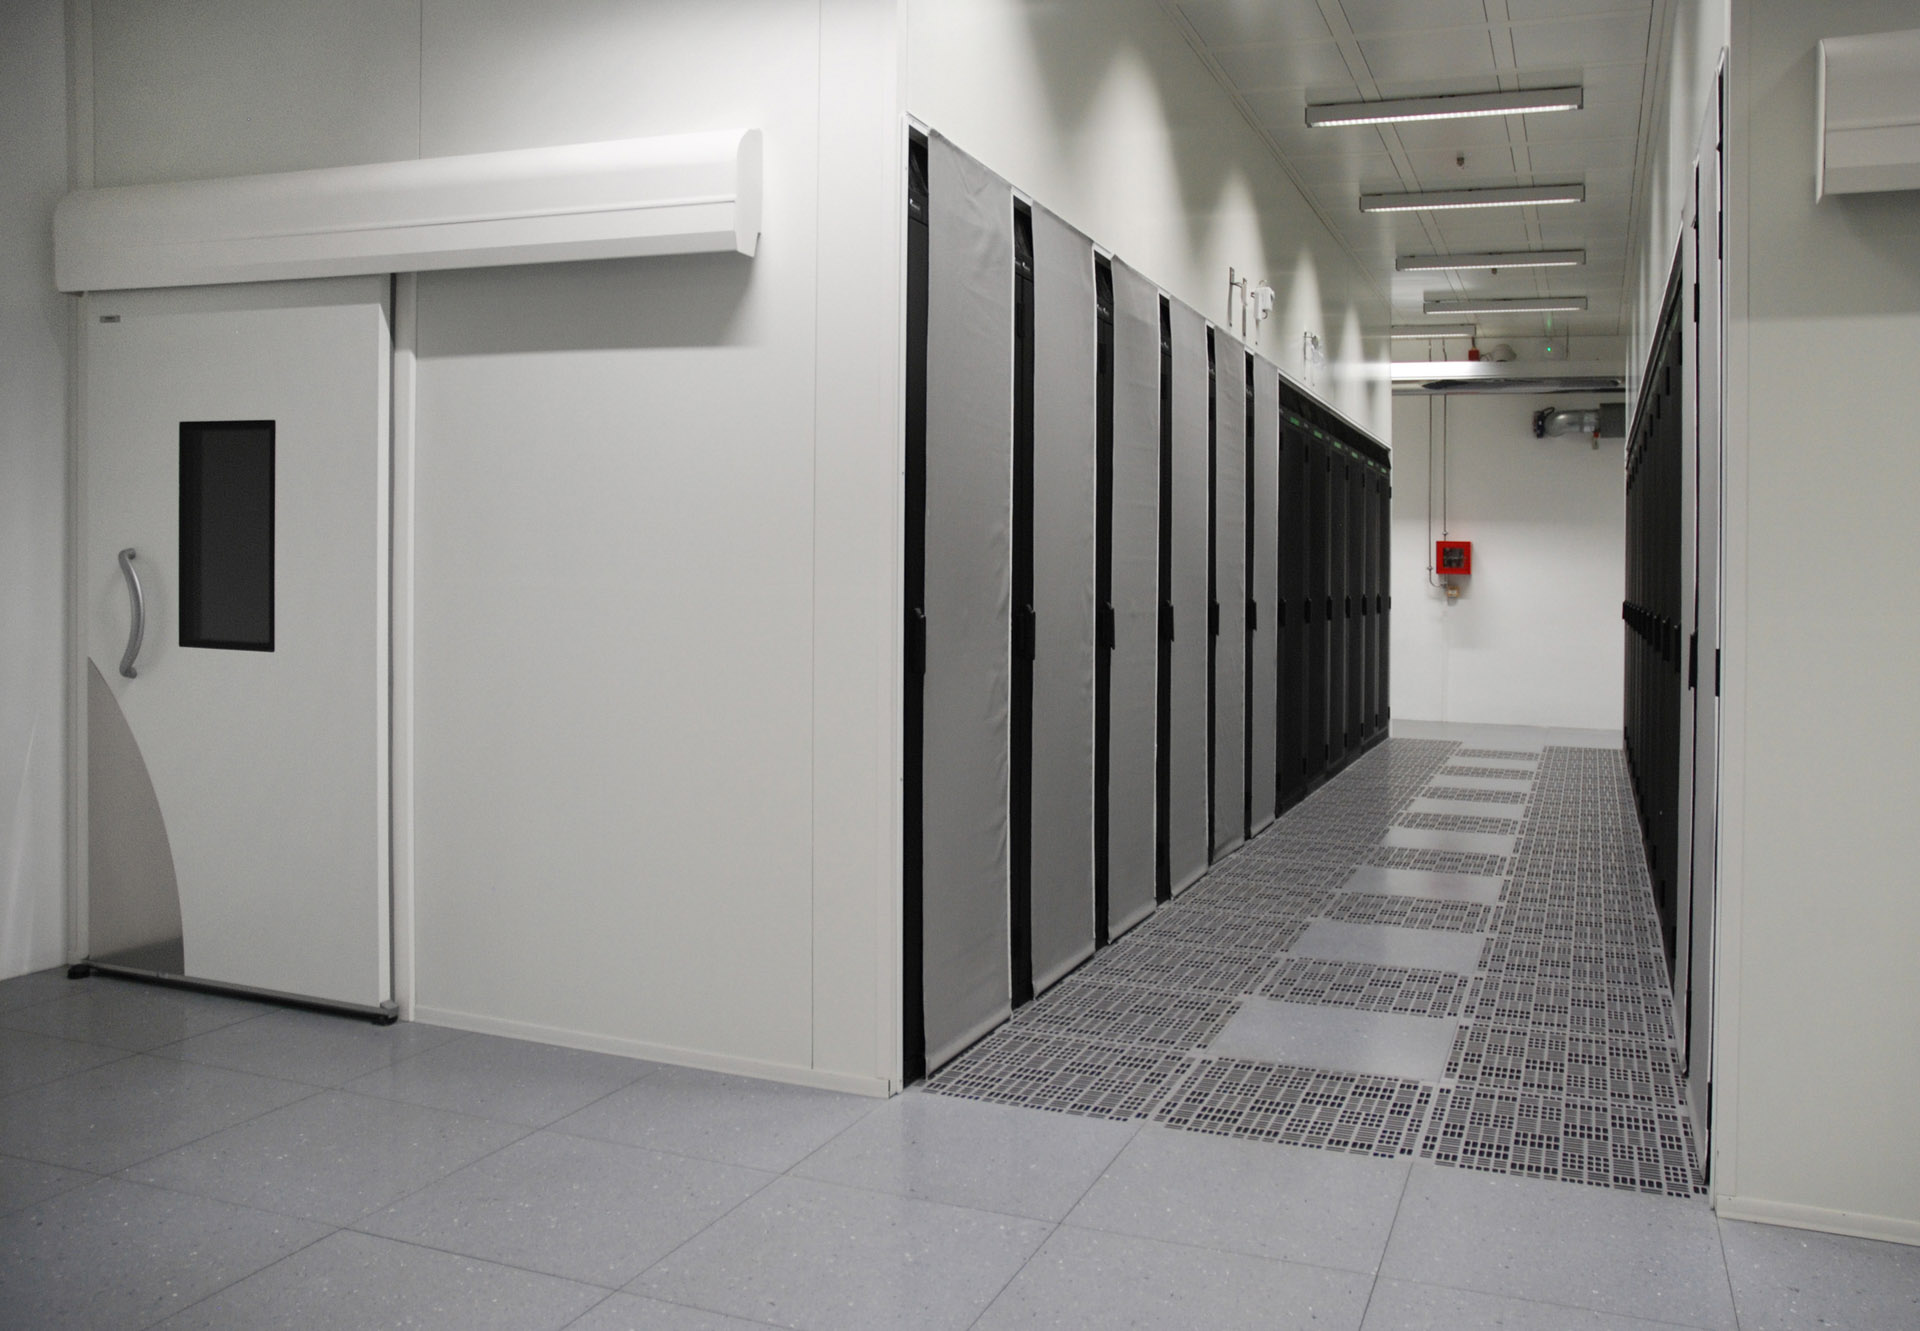 Data Center header image